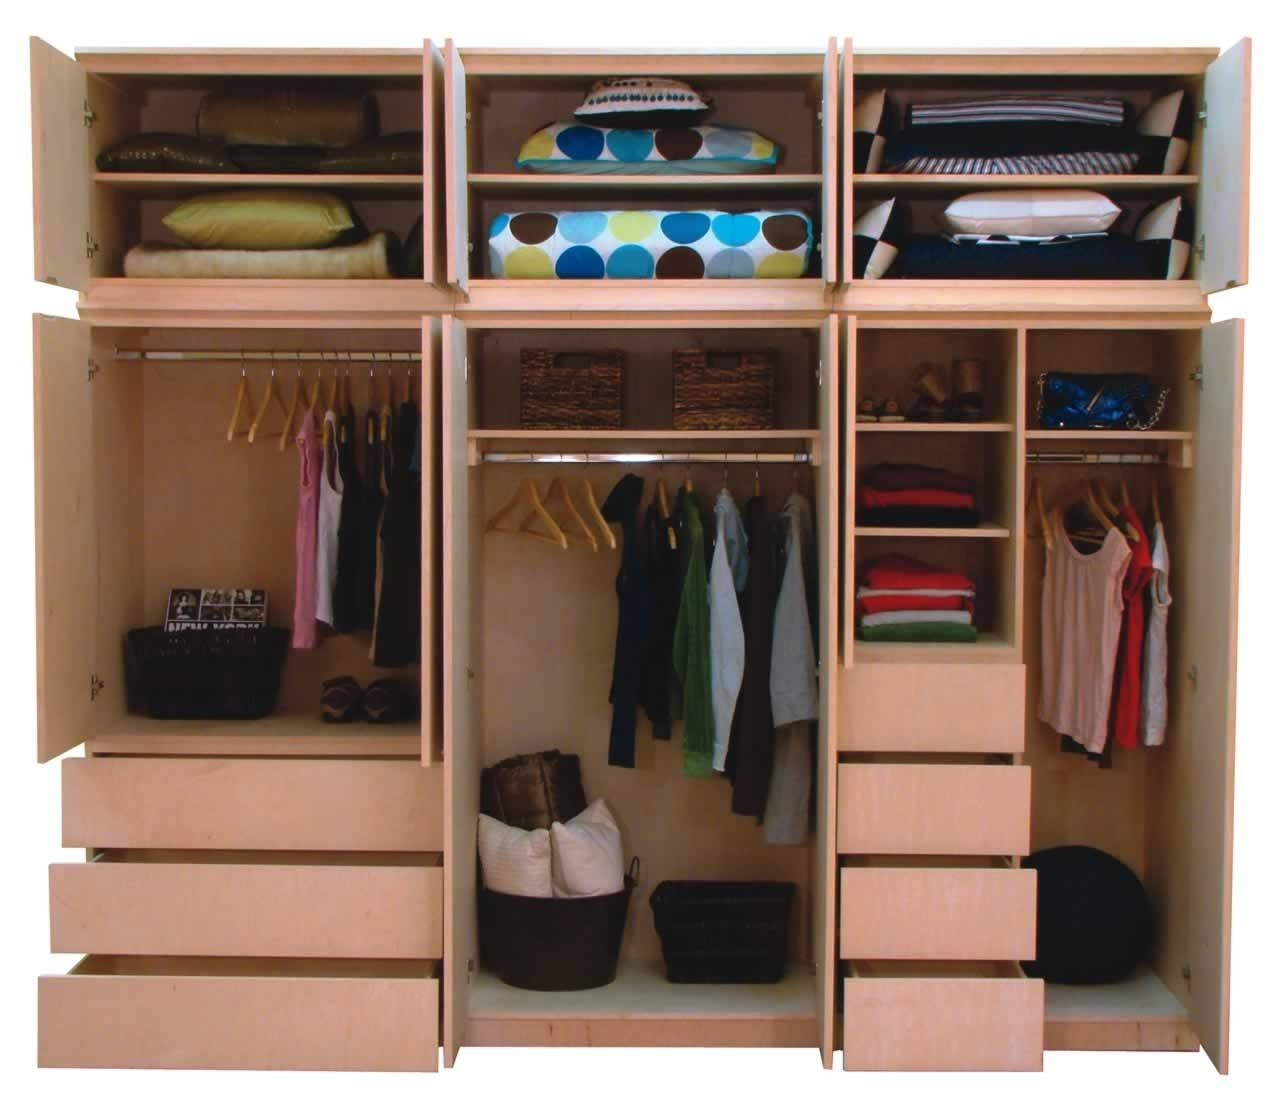 Amazing Mahogany Wood Wardrobe Design Inspiration With Double within Drawers And Shelves For Wardrobes (Image 4 of 30)